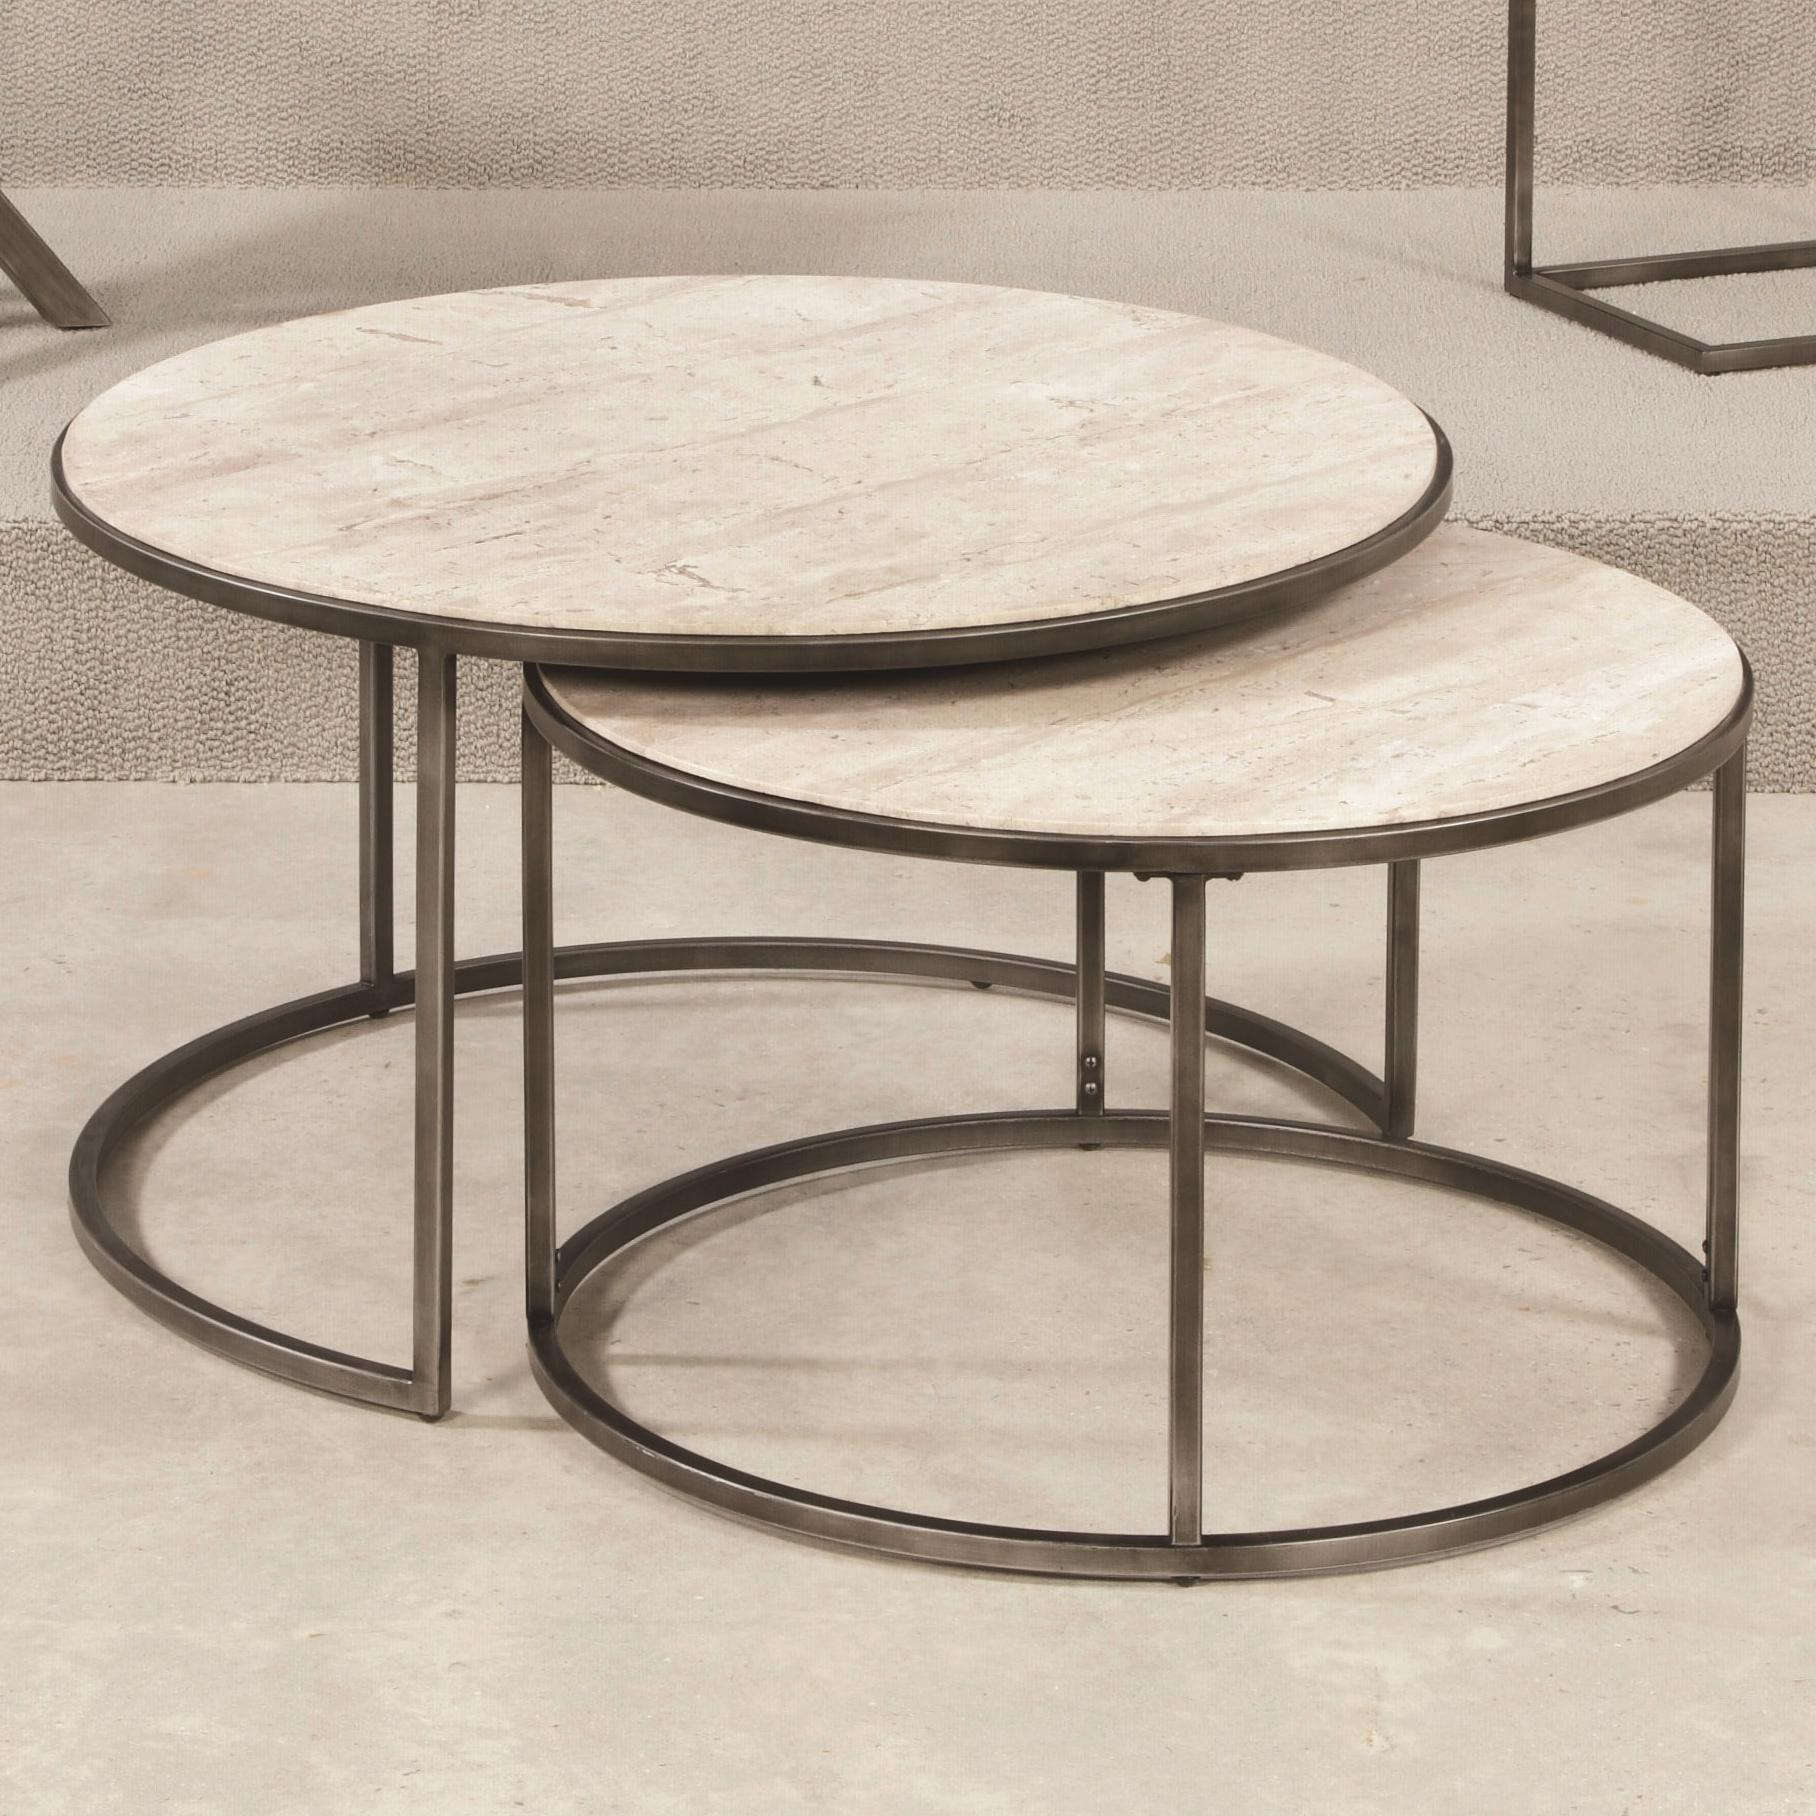 Hammary Modern Basics Round Tail Table With Nesting Tables Ahfa Occasional Group Dealer Locator